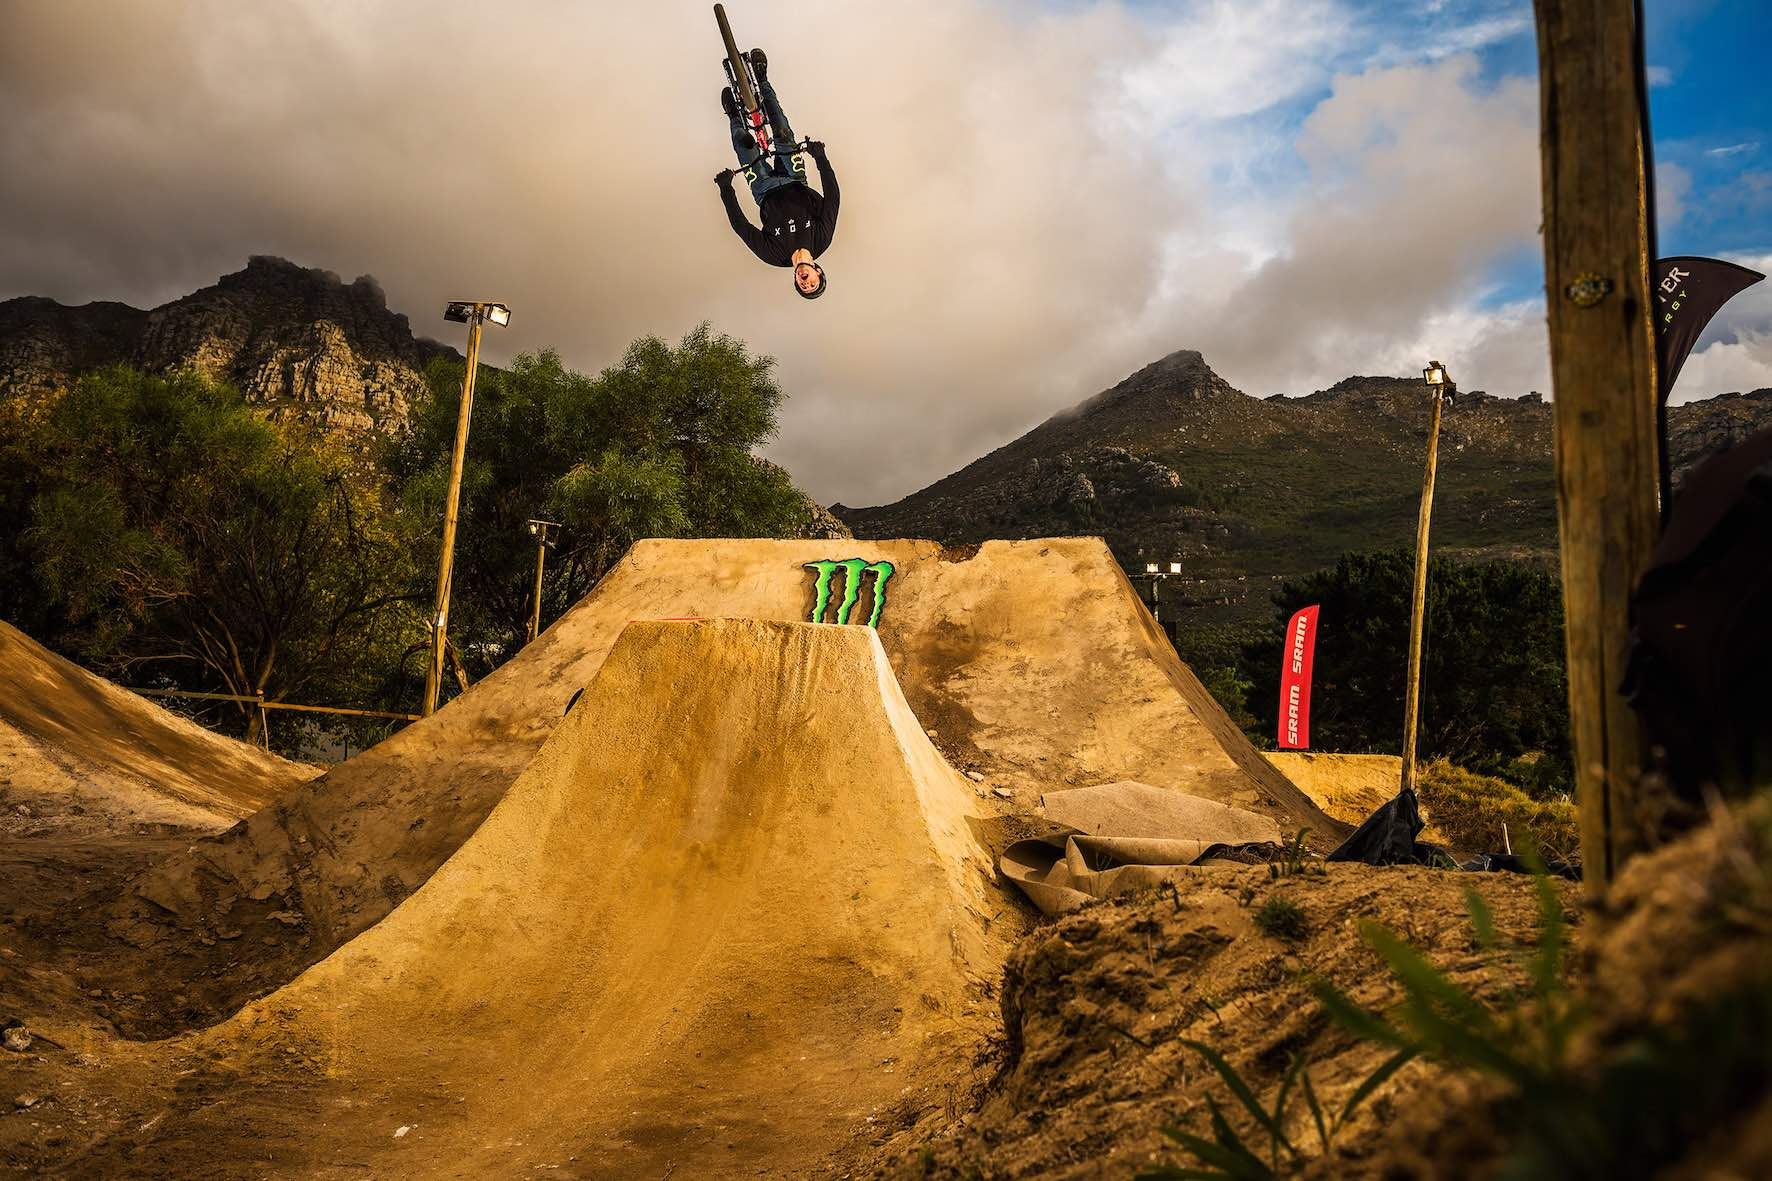 Theo Erlangsen riding in the 2019 The Night Harvest MTB dirt jump contest